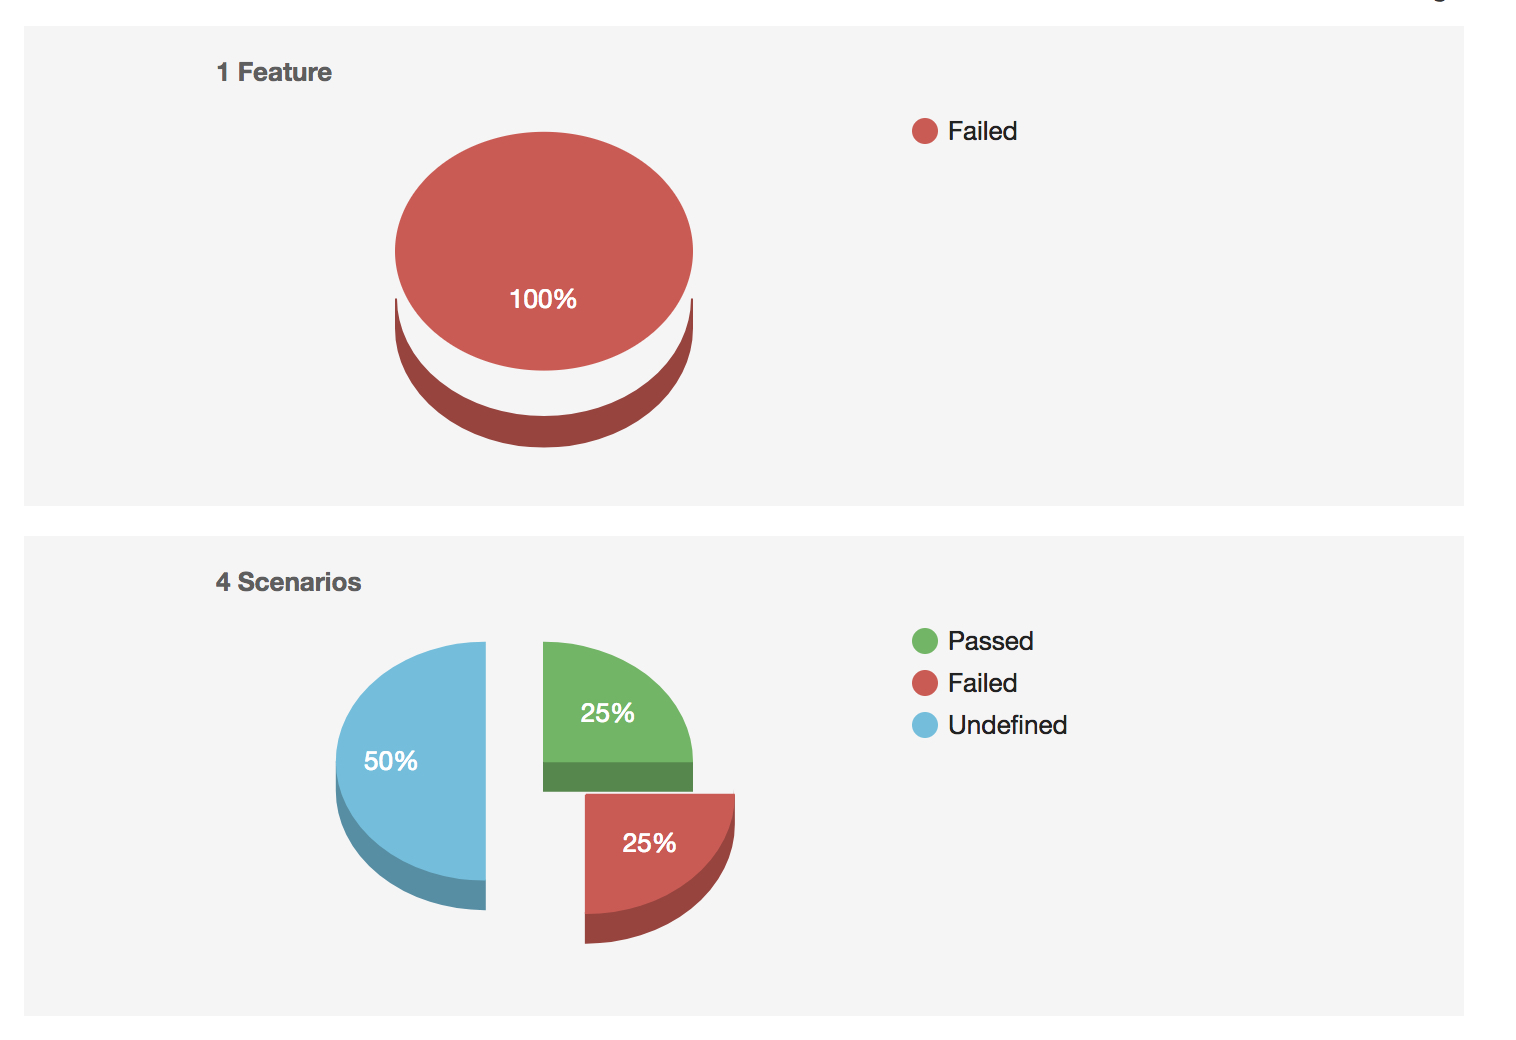 Bootstrap Template Pie Chart Ui Bug Failed Feature Issue 127